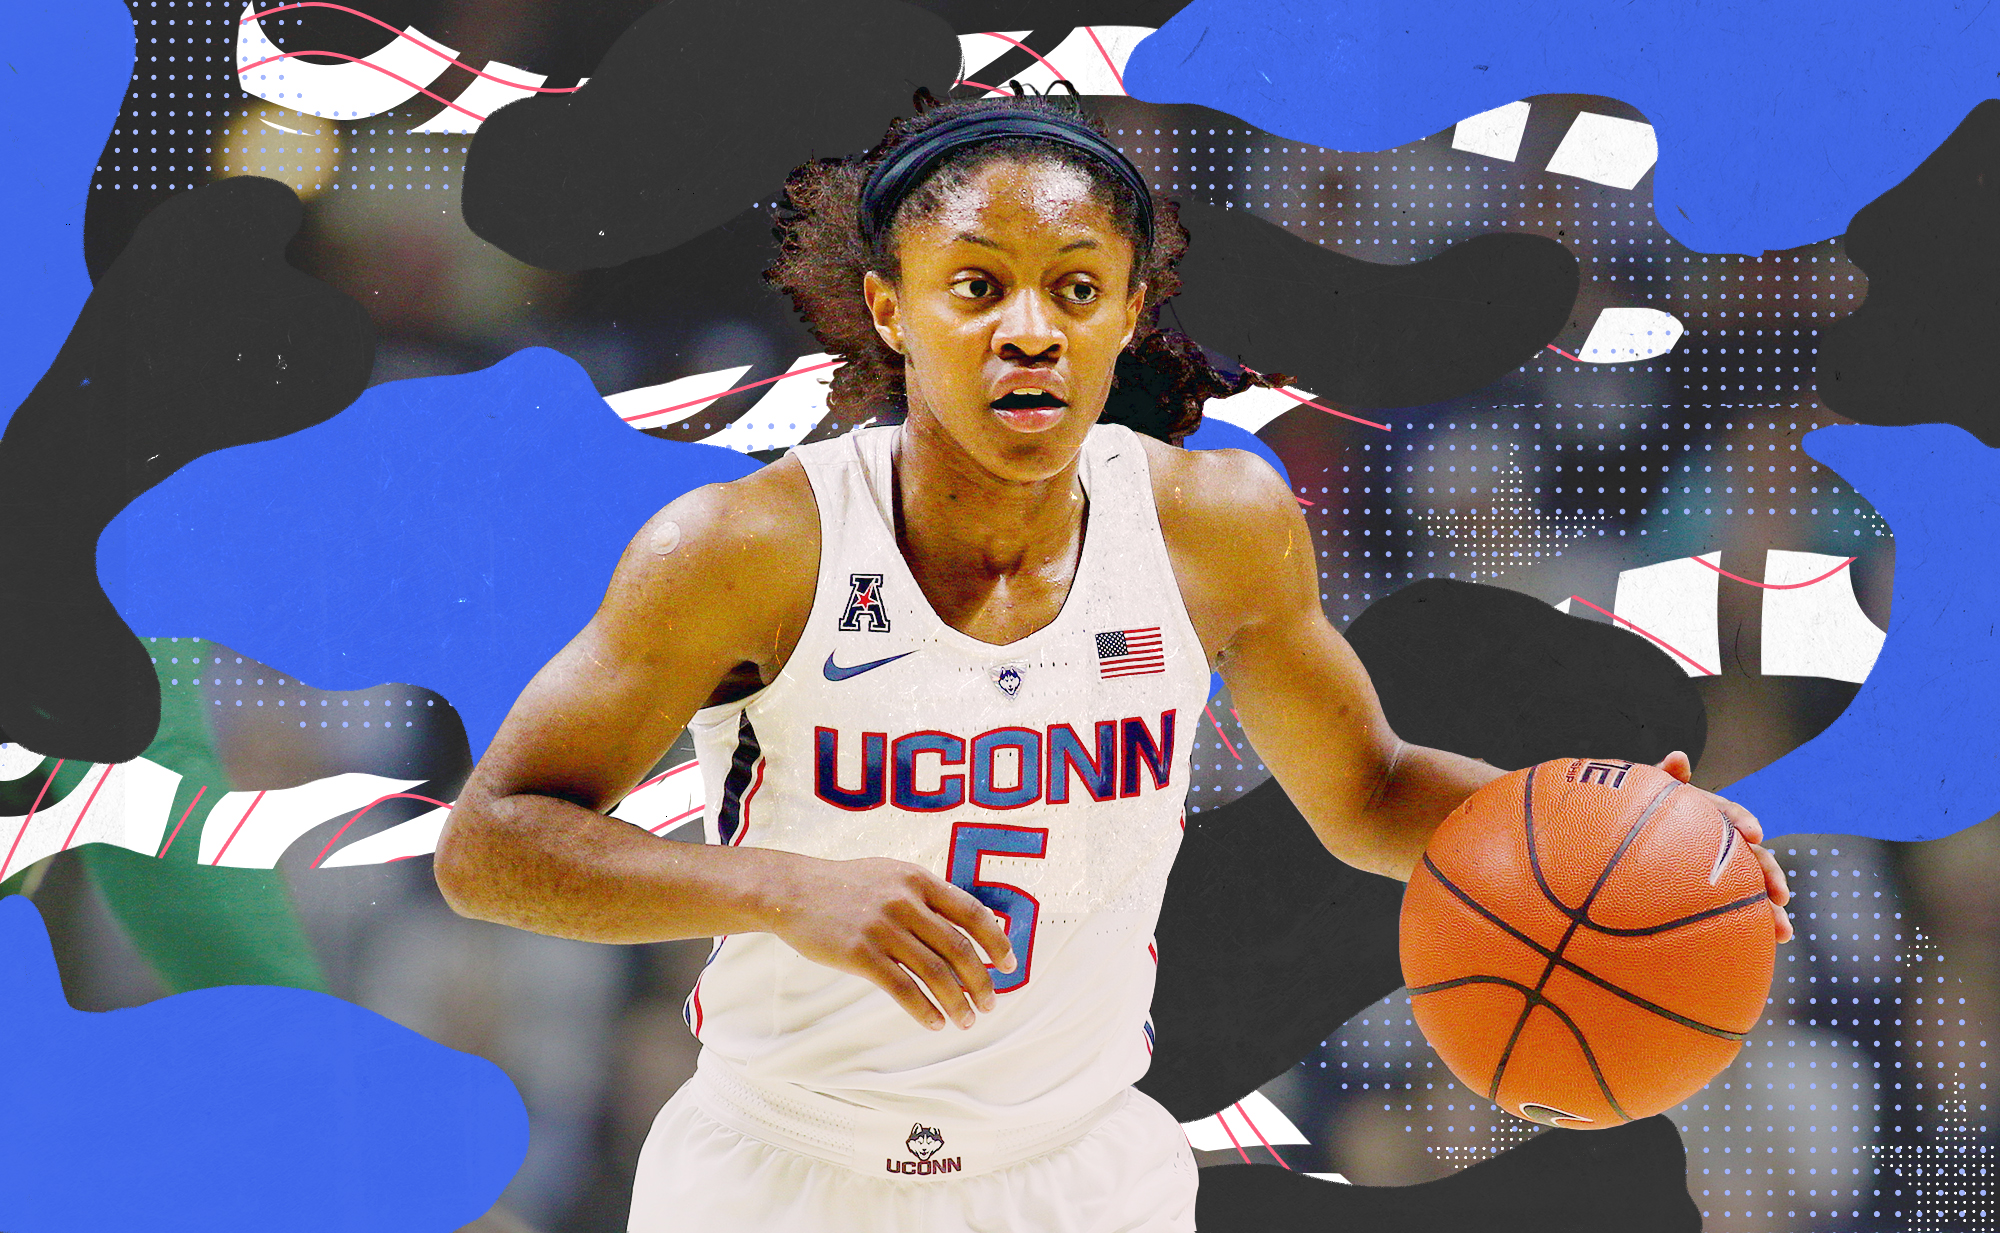 UConn's Crystal Dangerfield in action on the court